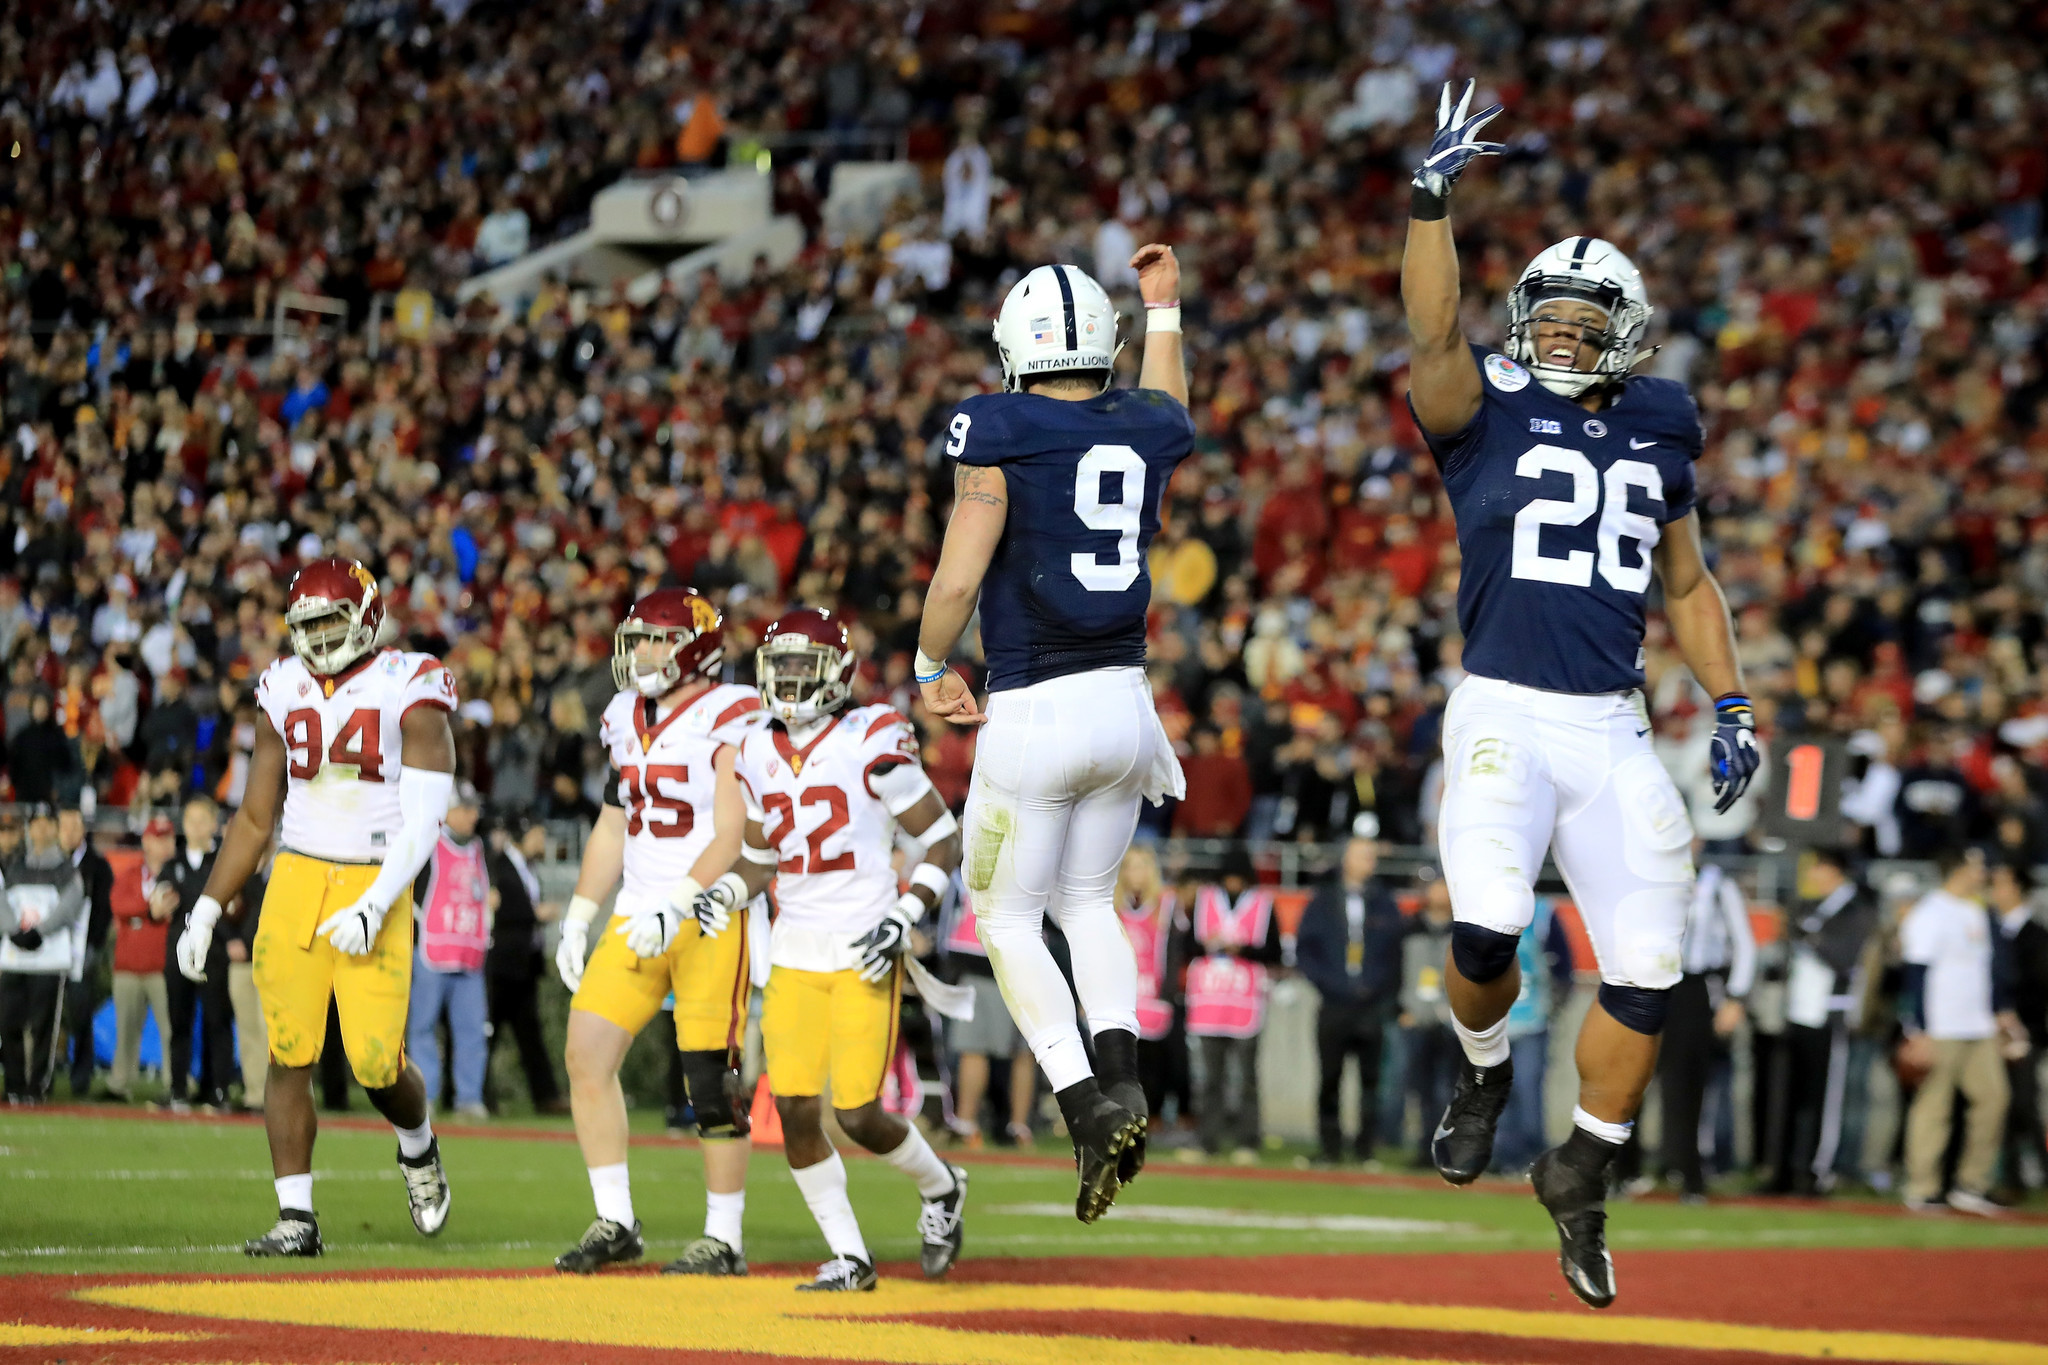 Mc-five-questions-for-penn-state-as-spring-football-practice-begins-20170320